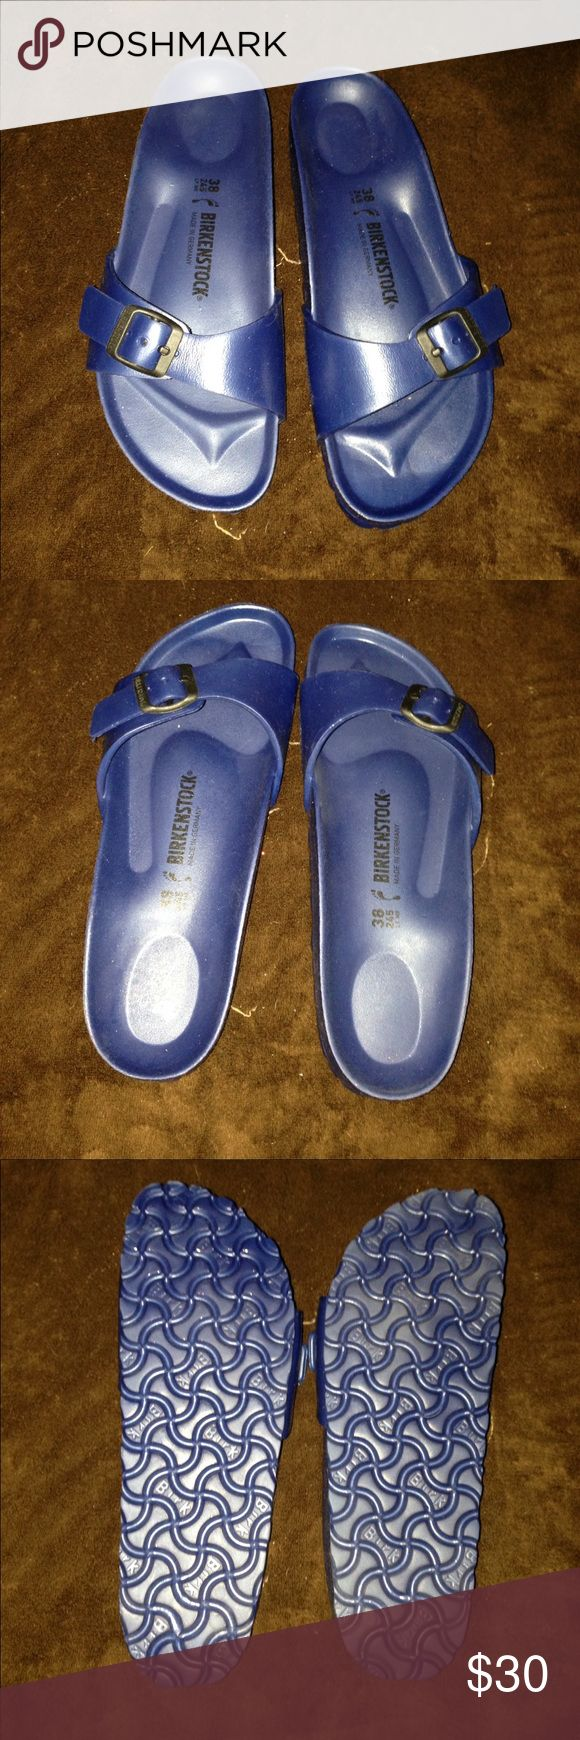 Birkenstock Madrid style navy blue size 38 nwt no box trade value is retail price Birkenstock Shoes Sandals